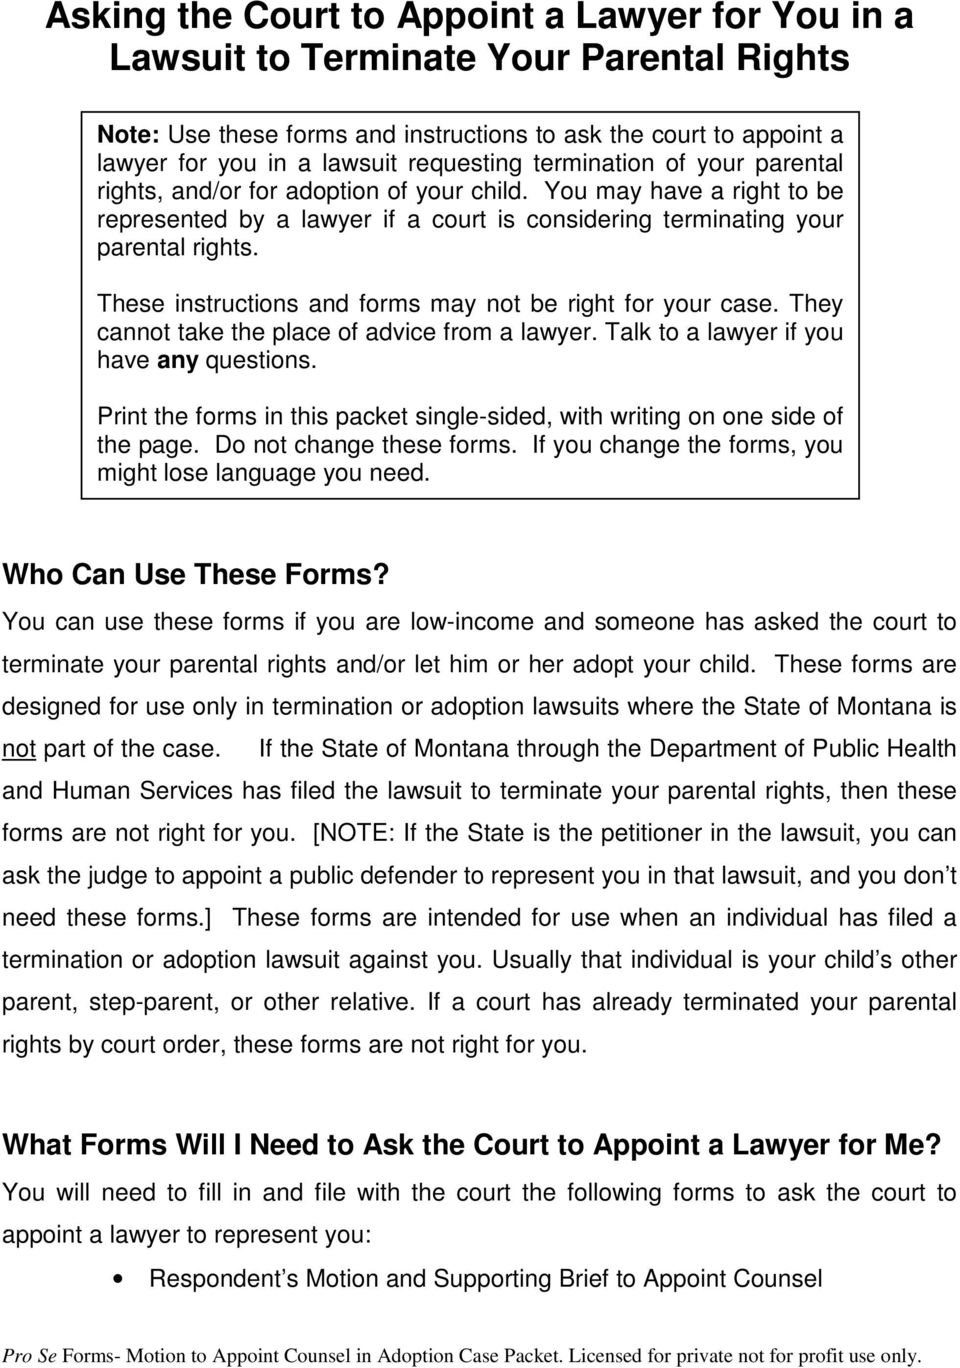 These instructions and forms may not be right for your case. They cannot take the place of advice from a lawyer. Talk to a lawyer if you have any questions.